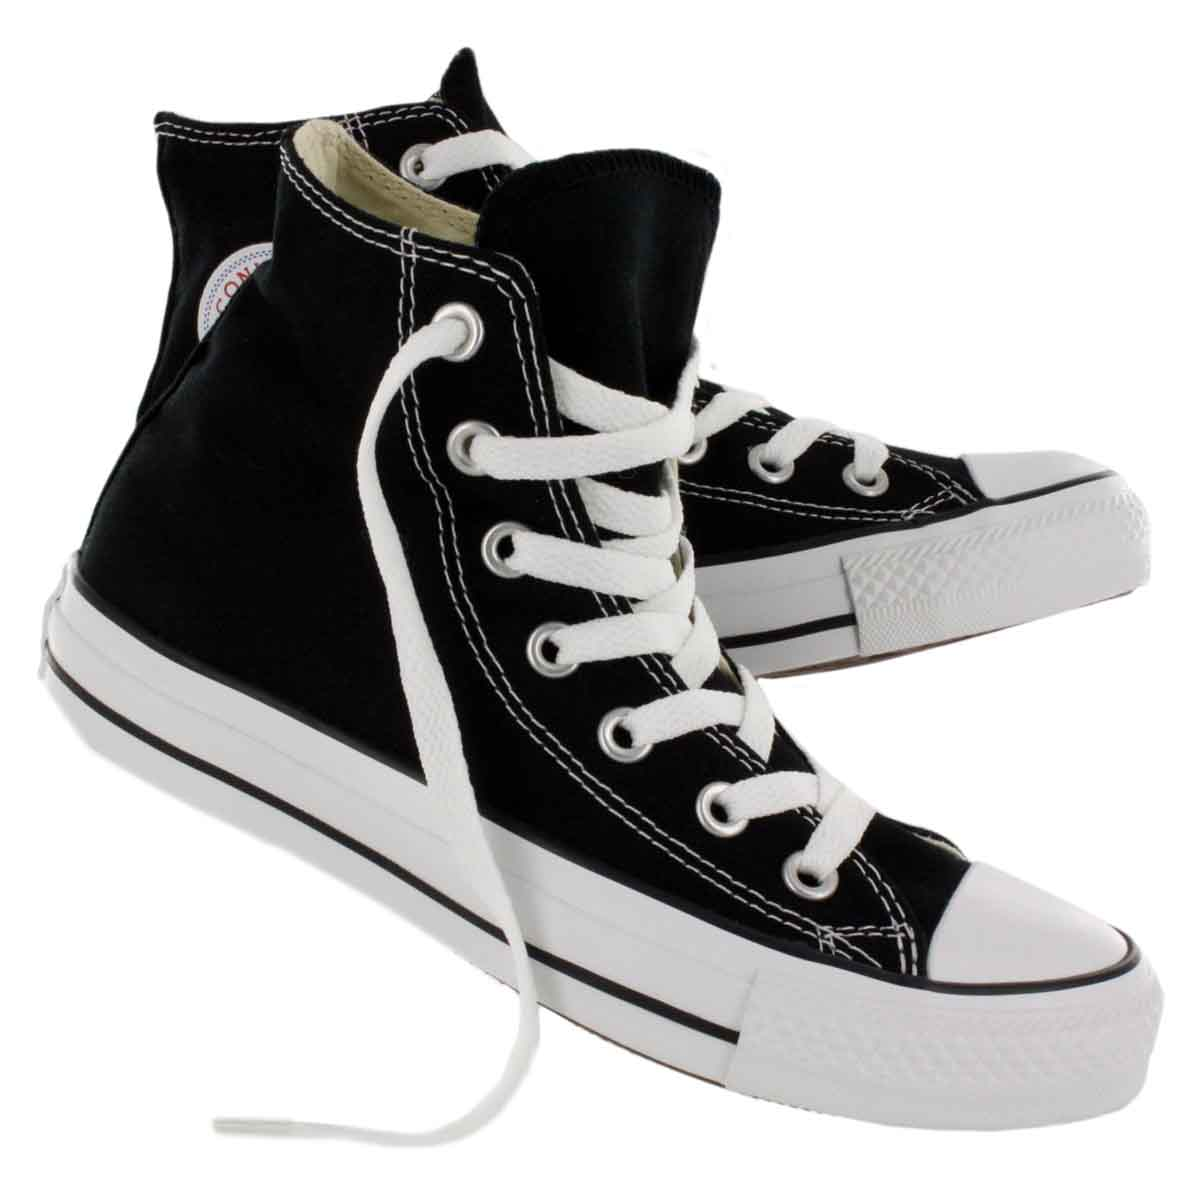 converse shoes for girls black. converse chuck taylor hi-top shoes for girls black a